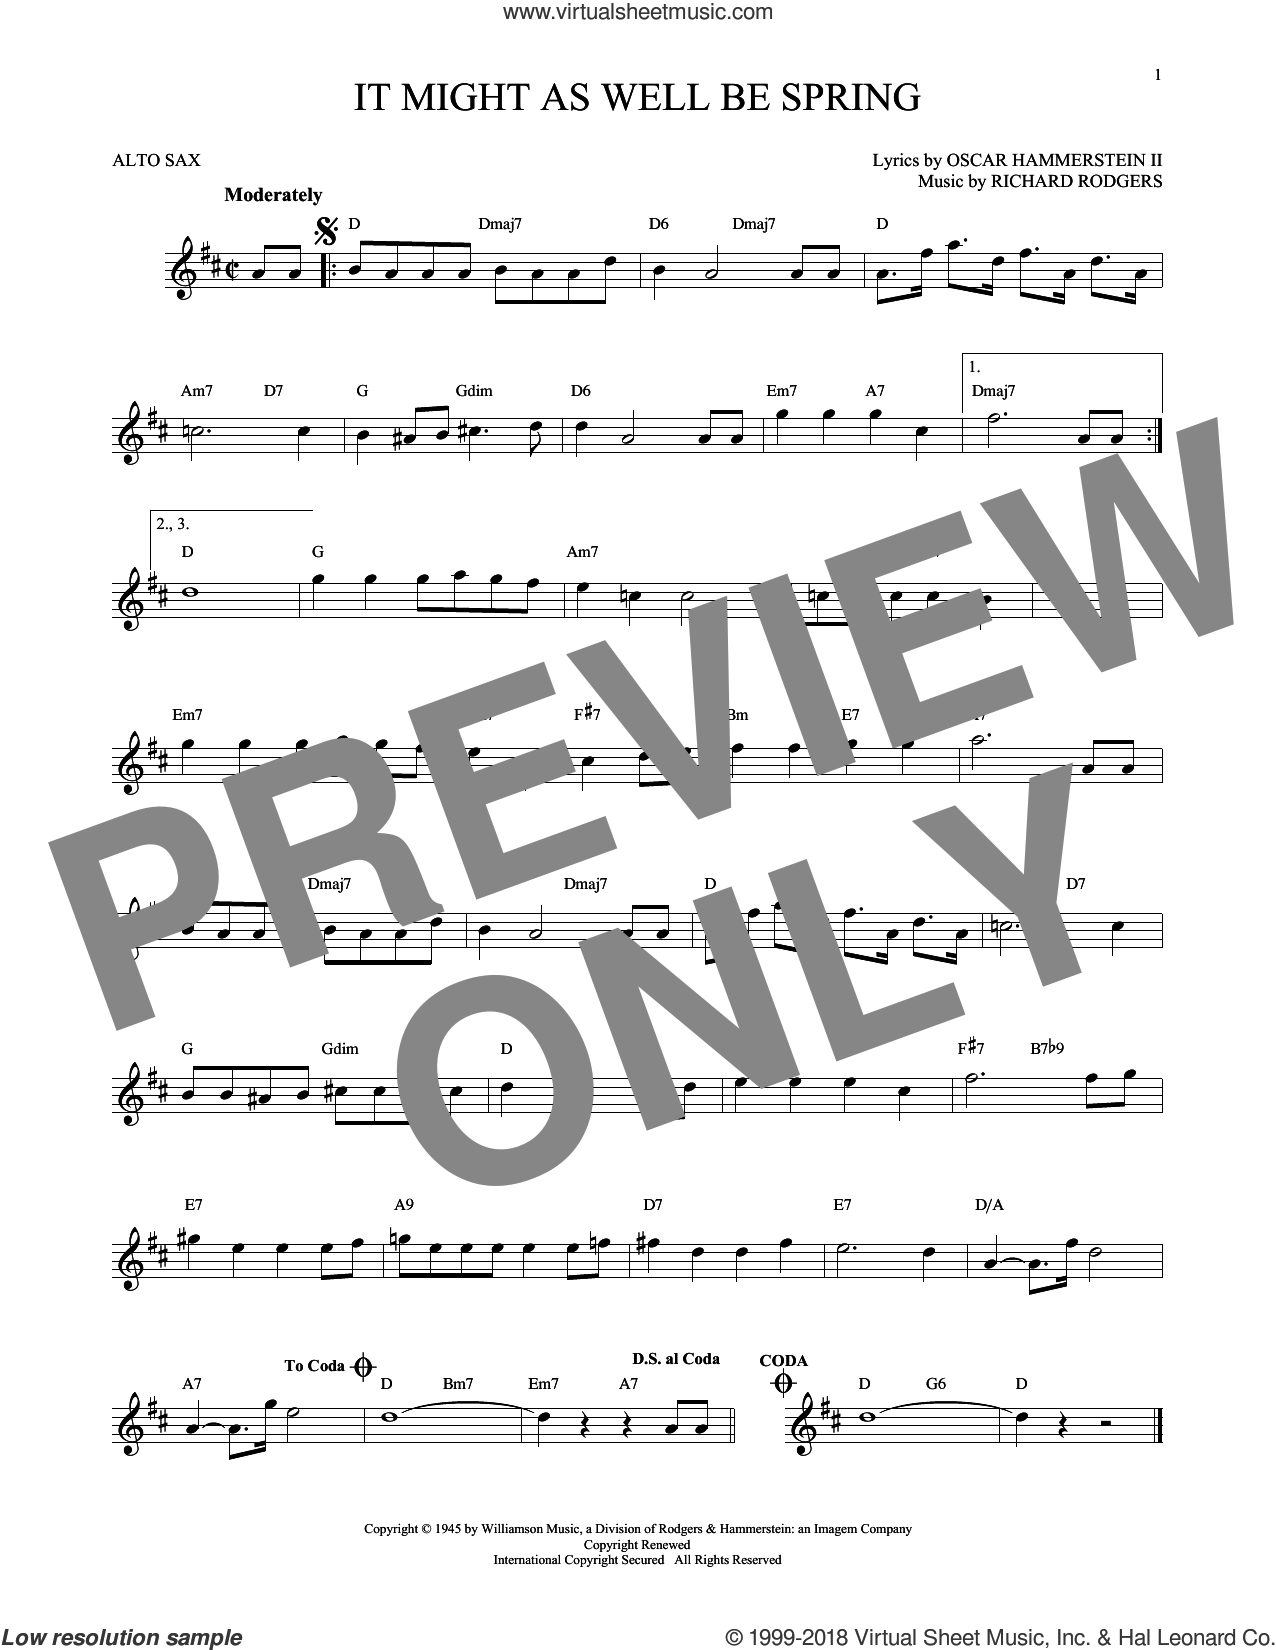 It Might As Well Be Spring sheet music for alto saxophone solo by Rodgers & Hammerstein, Oscar II Hammerstein and Richard Rodgers, intermediate skill level